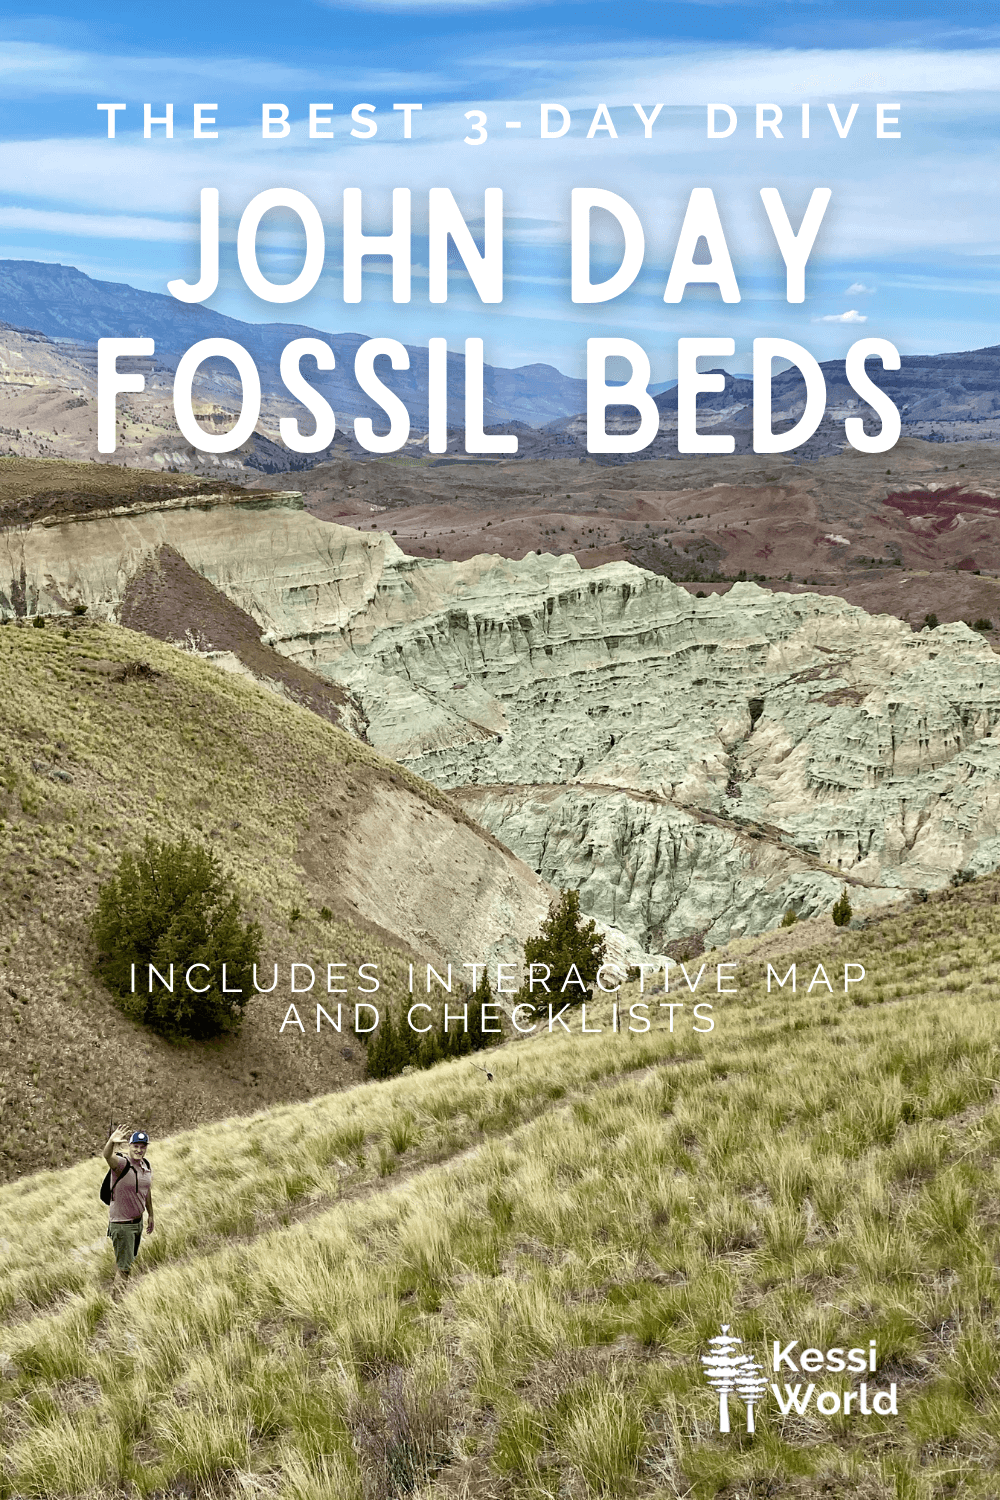 This Pinterest pin shows Matthew Kessi waving in the distance on a hiking path with the Blue Basin part of the John Day Fossil Beds National Monument in the background.  The stacks of greenish blue lined canyon ridges pop against the rest of the landscape with brown hills under a blue sky.